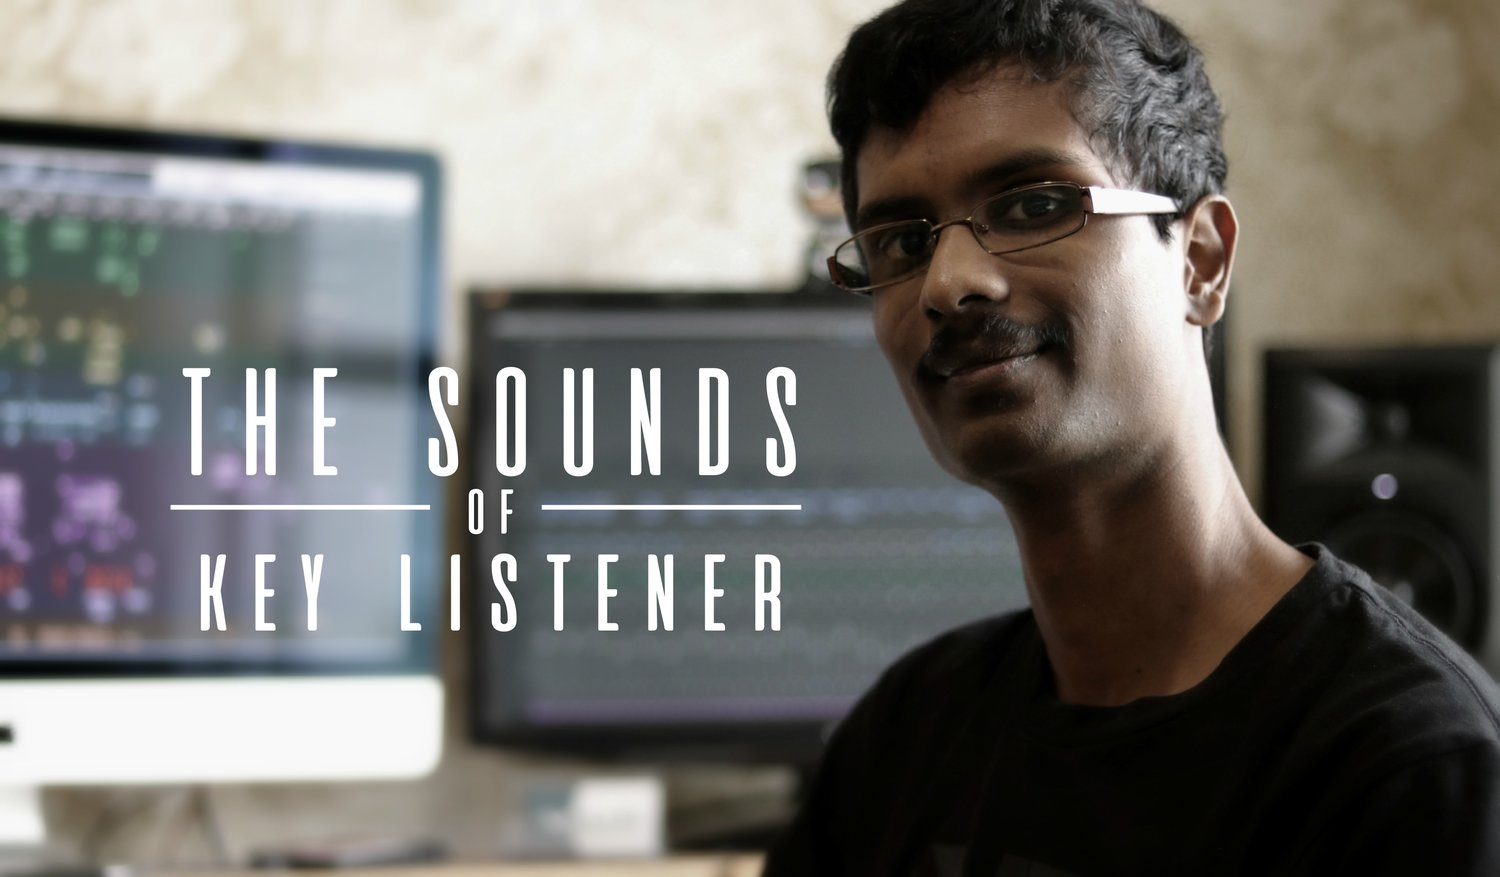 The Sounds of Key Listener